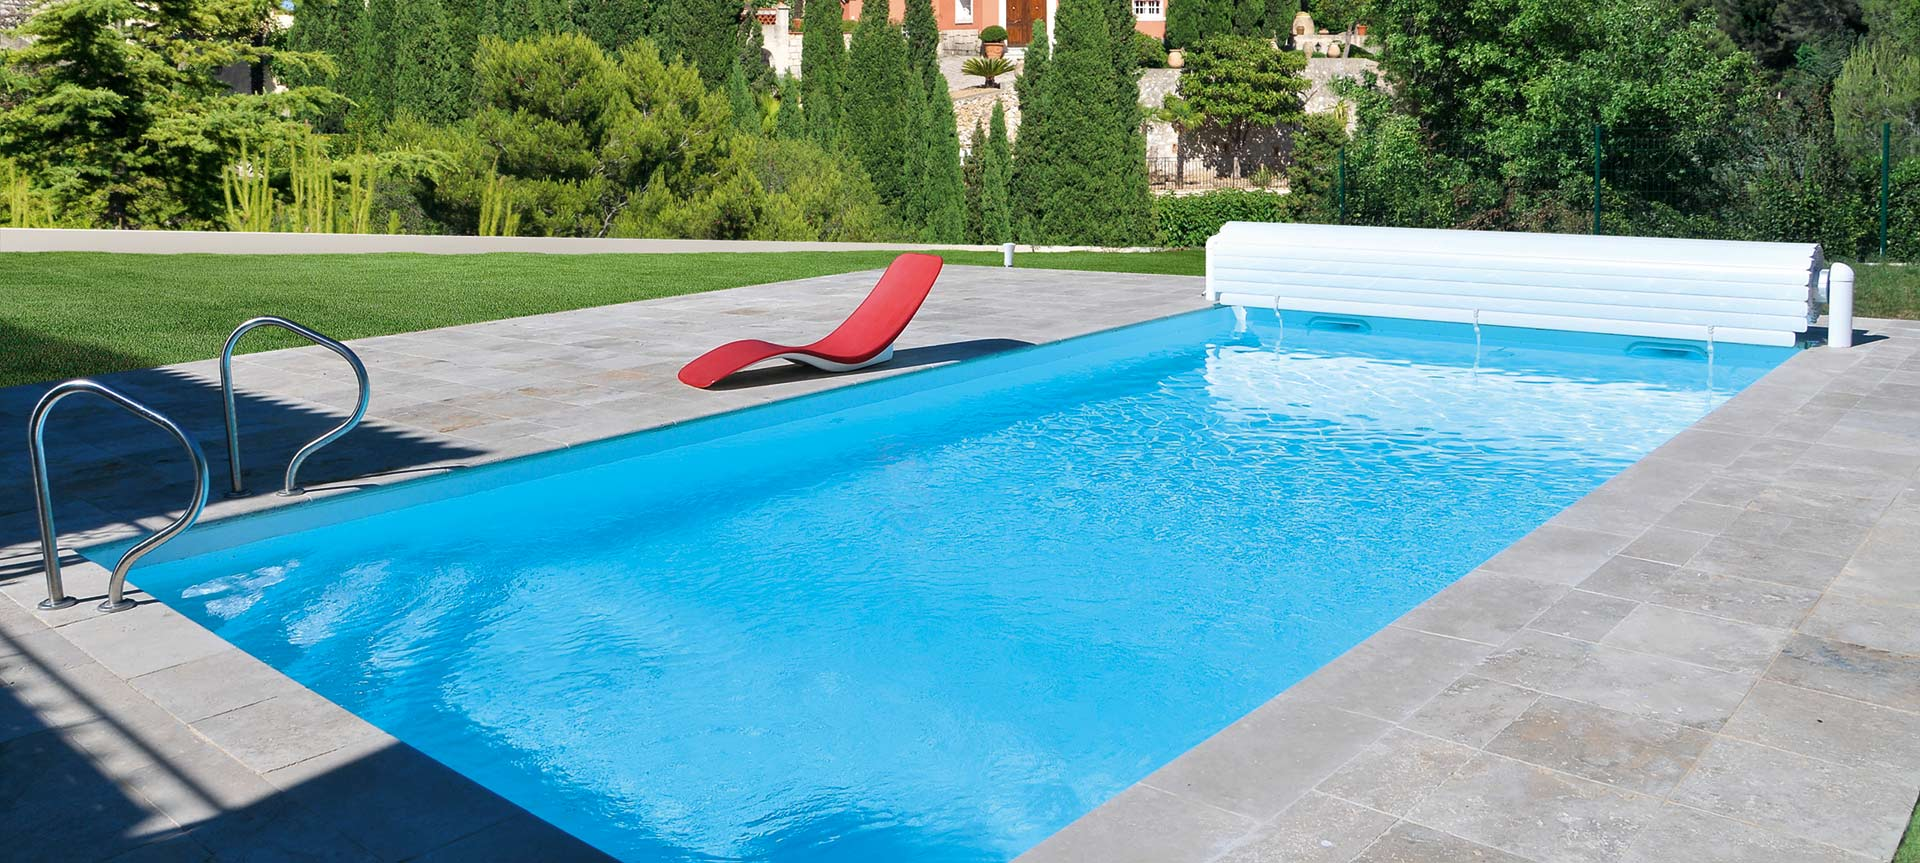 Tanch it des piscines avec liner ou pvc arm marseille for Piscine miroir avec liner